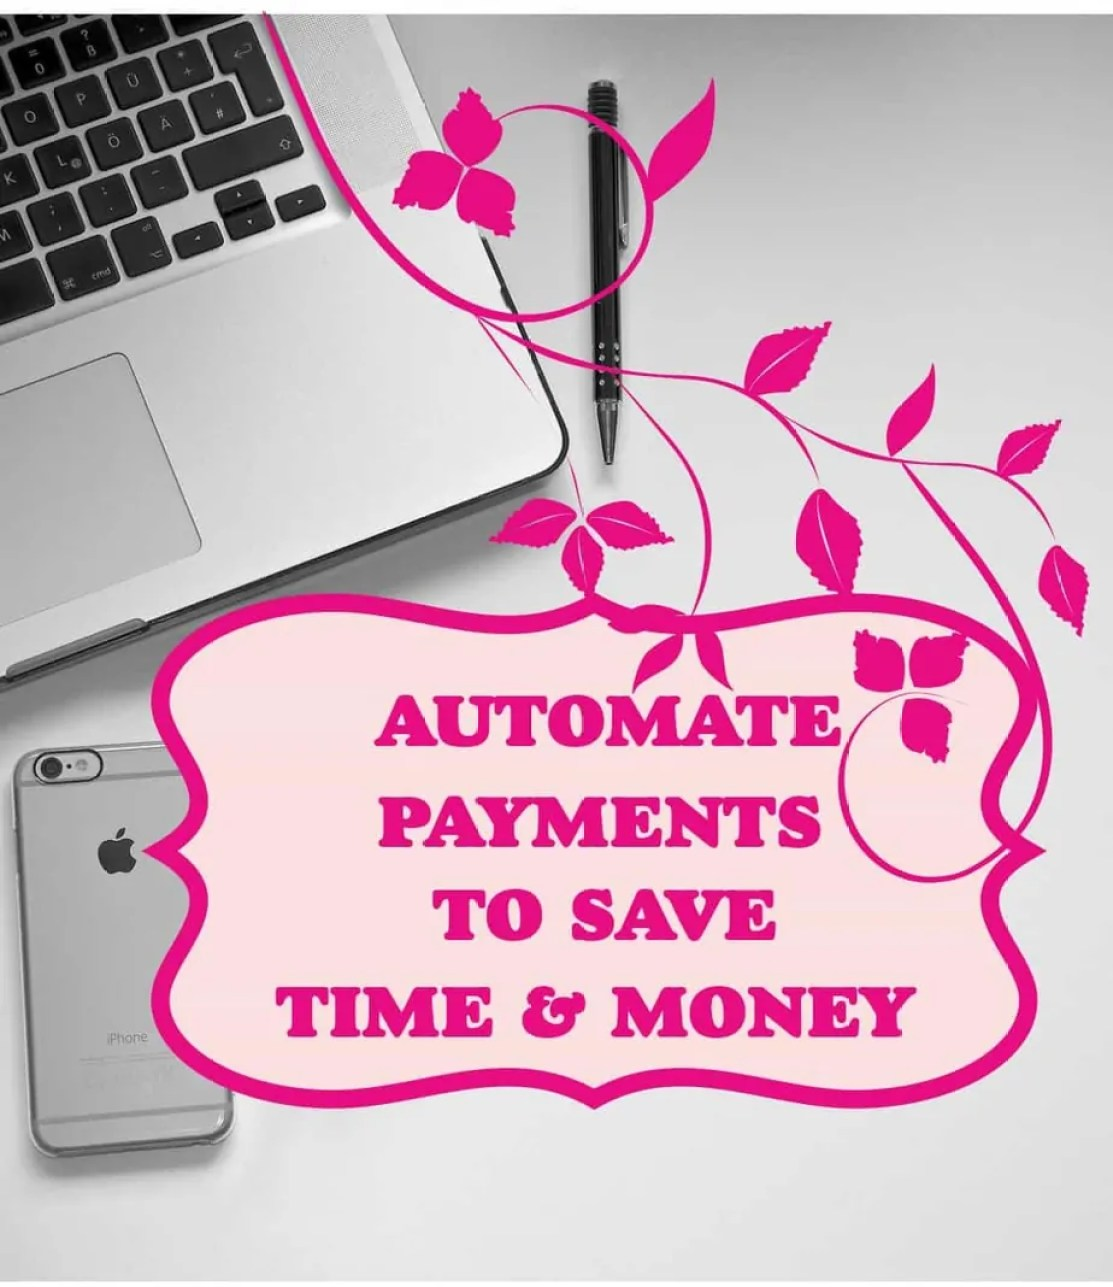 Automate Payments to Save Time and Money